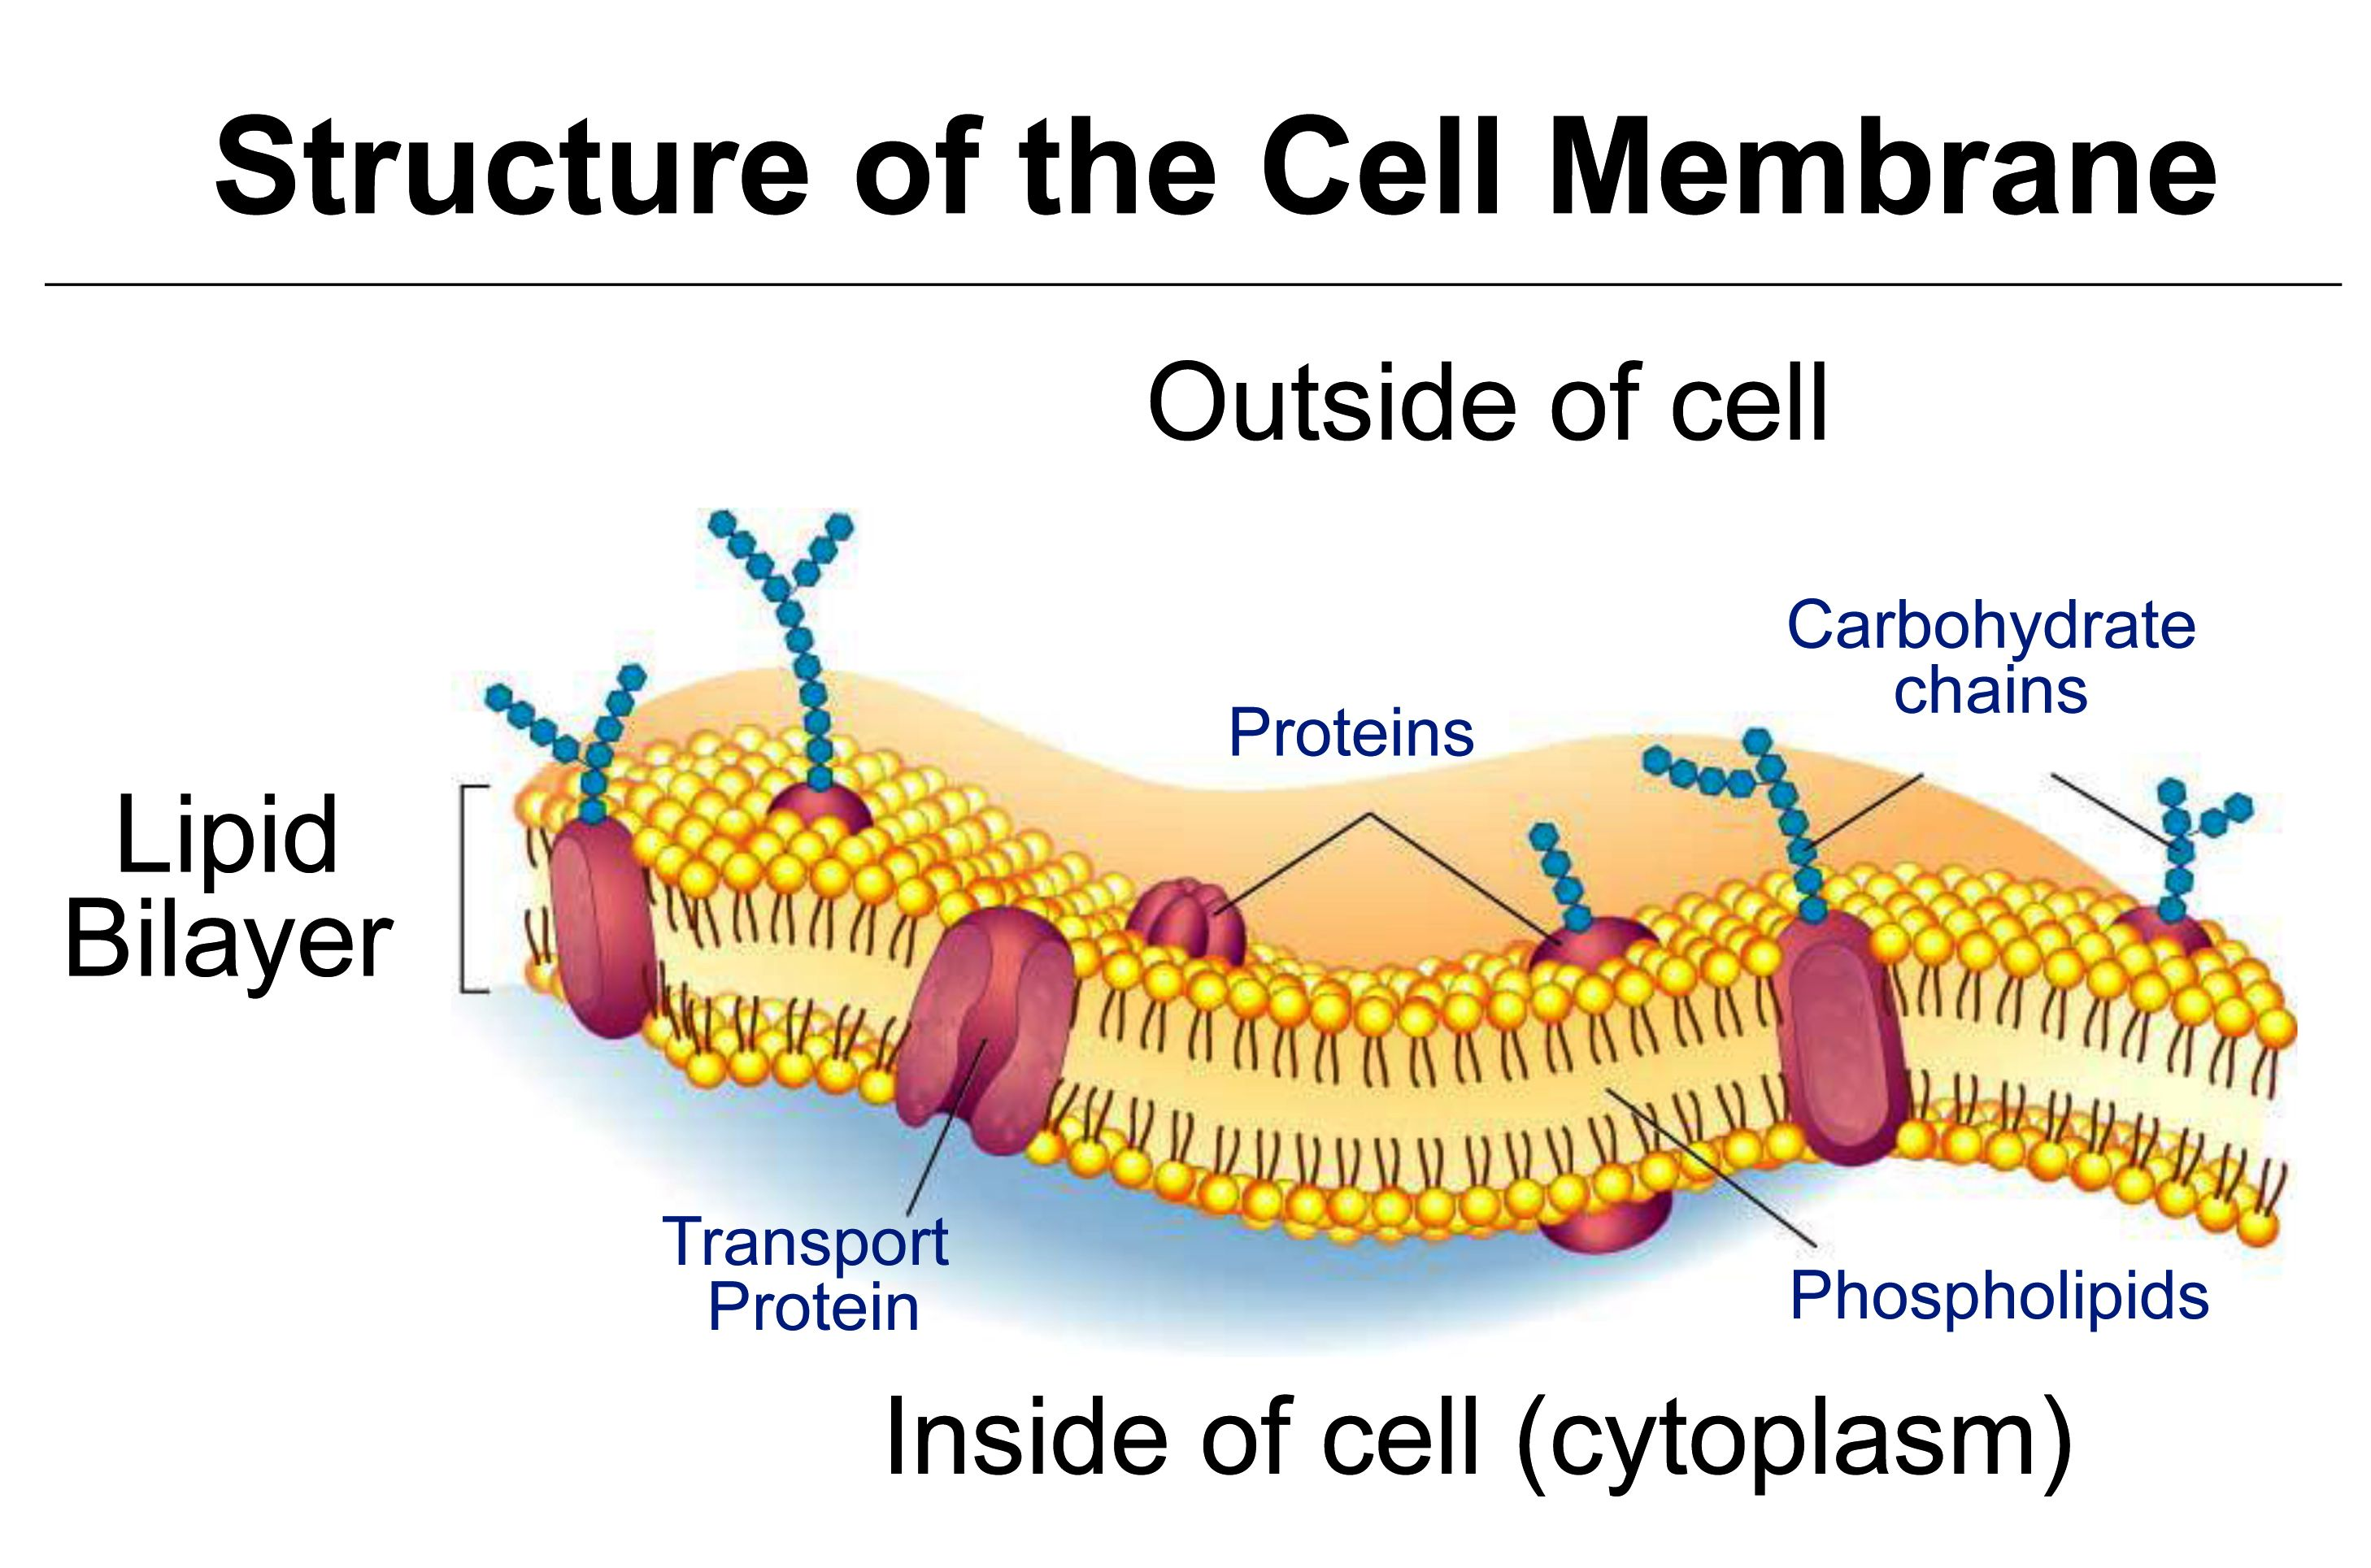 Tj Schematic Diagram Of Typical Membrane Proteins In A Biological Membrane The Phospholipid Bilayer The Basic Stru Cell Membrane Cell Organelles Animal Cell